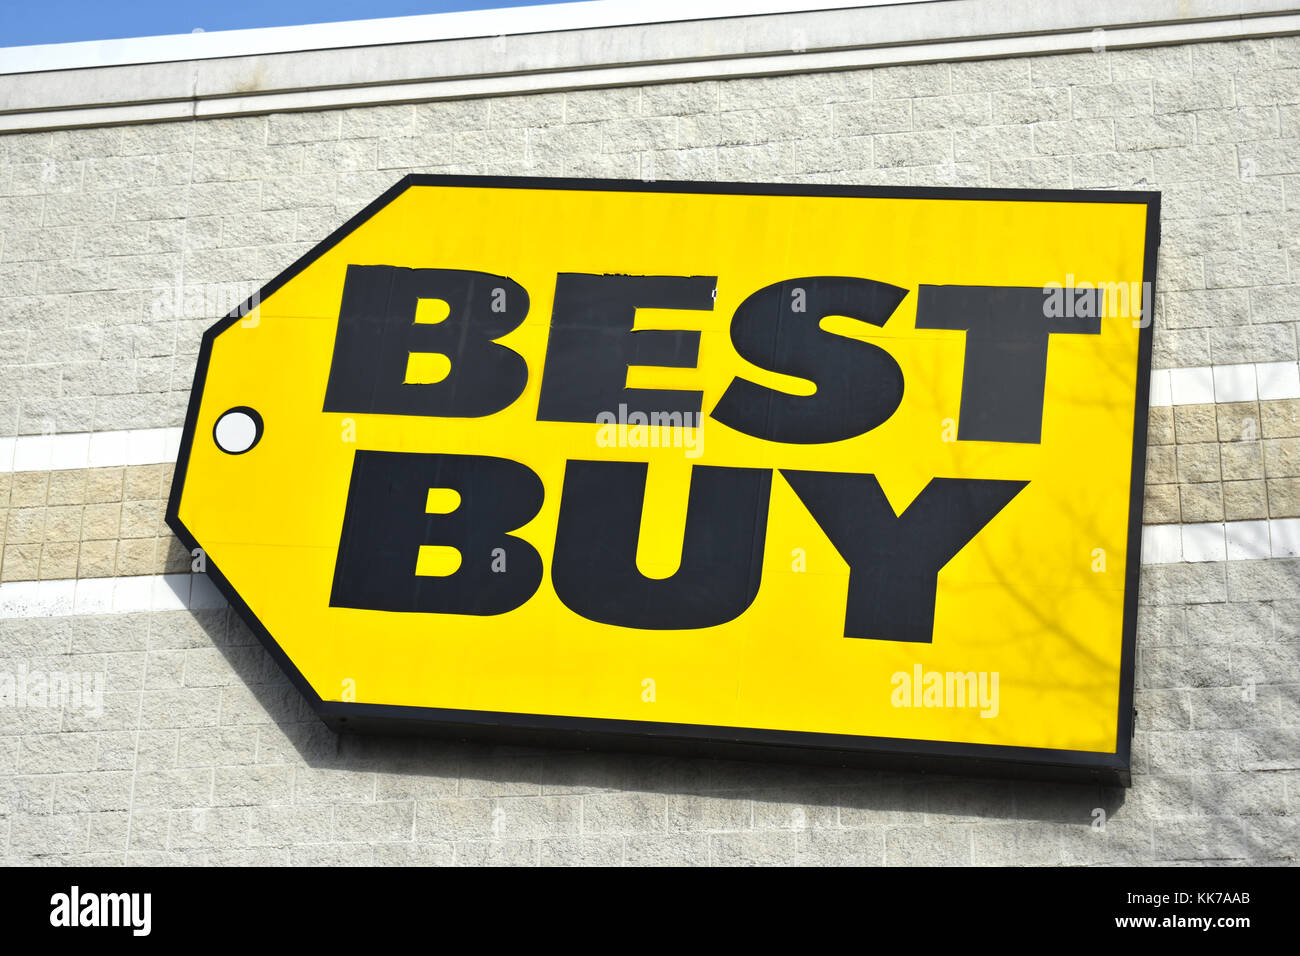 electronics shopping usa stock photos electronics shopping usa stock images alamy. Black Bedroom Furniture Sets. Home Design Ideas